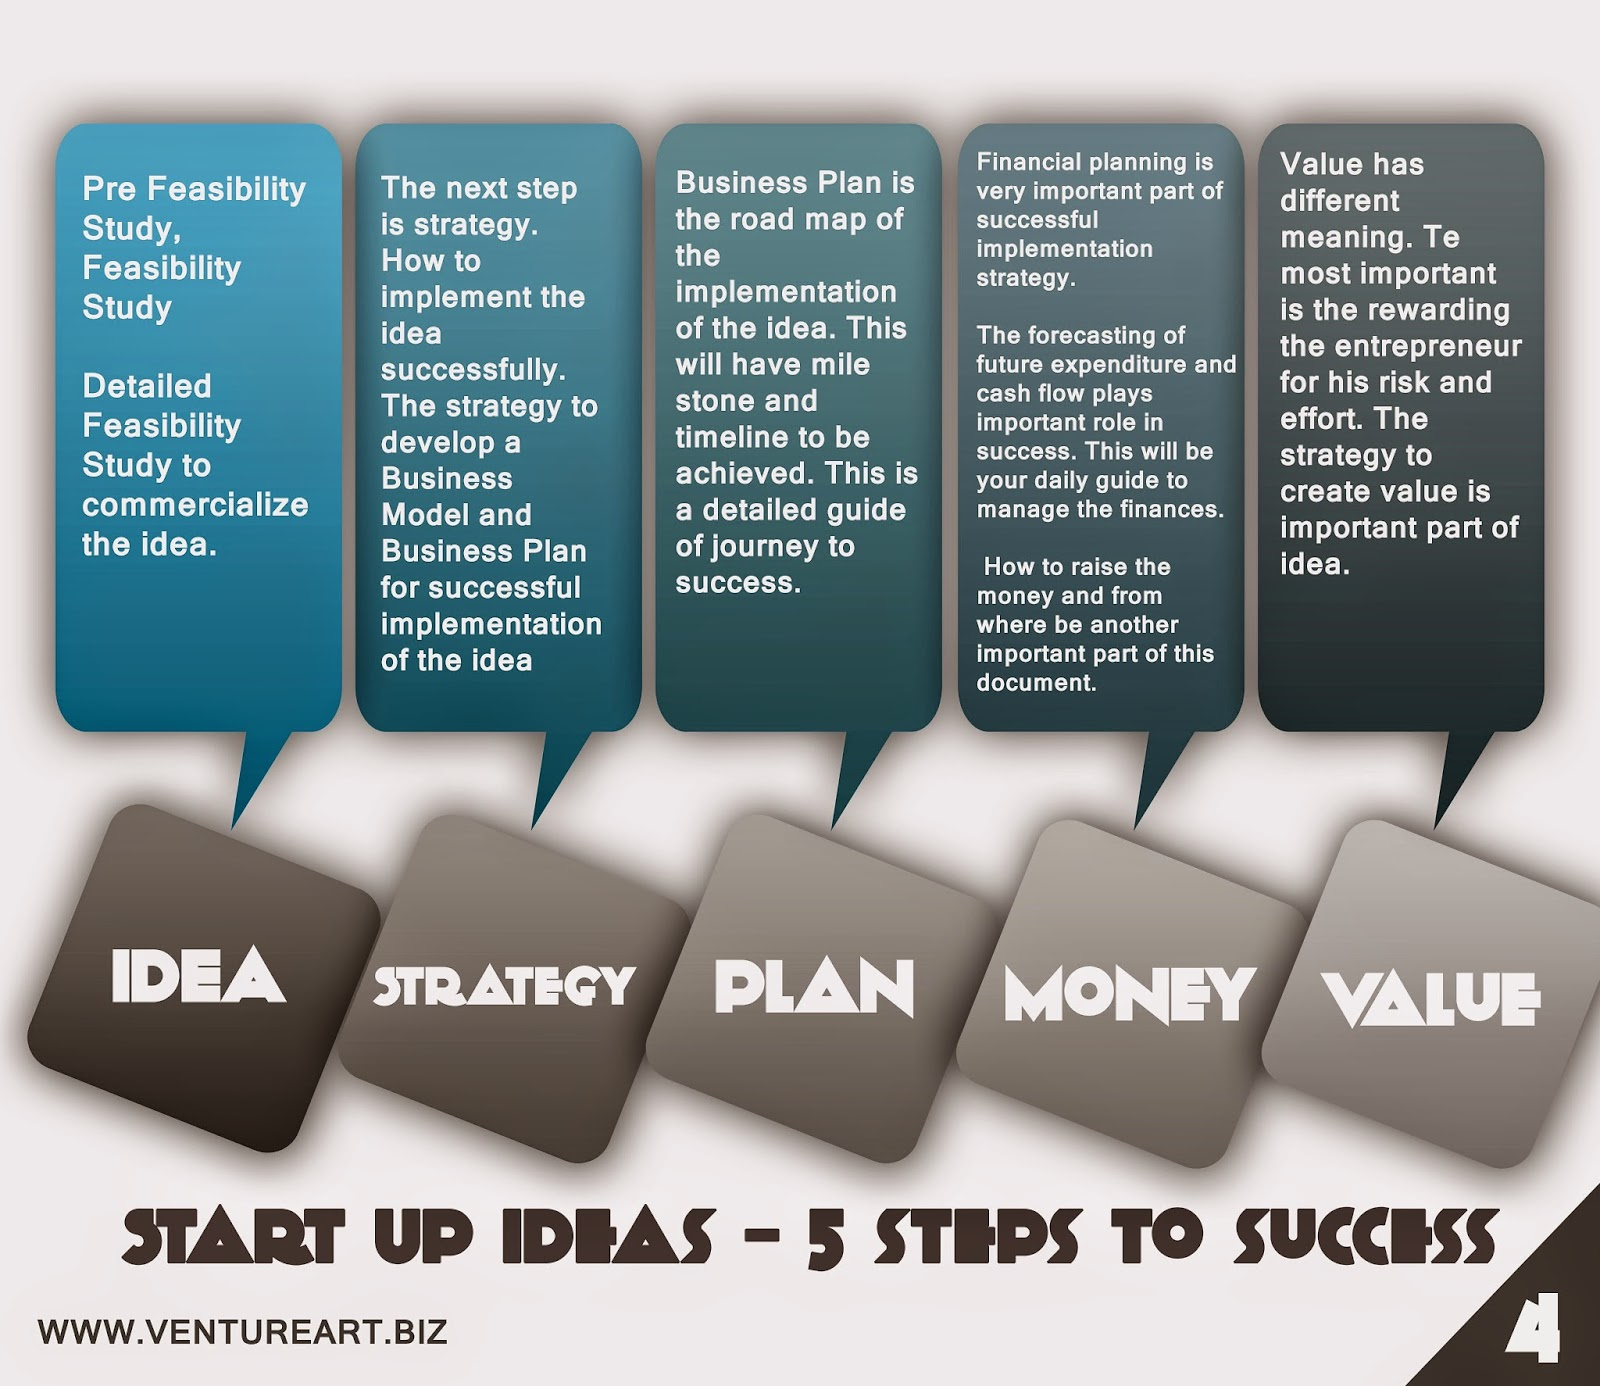 Venture Art - 5 Step Process to Create Value and Build Ideas